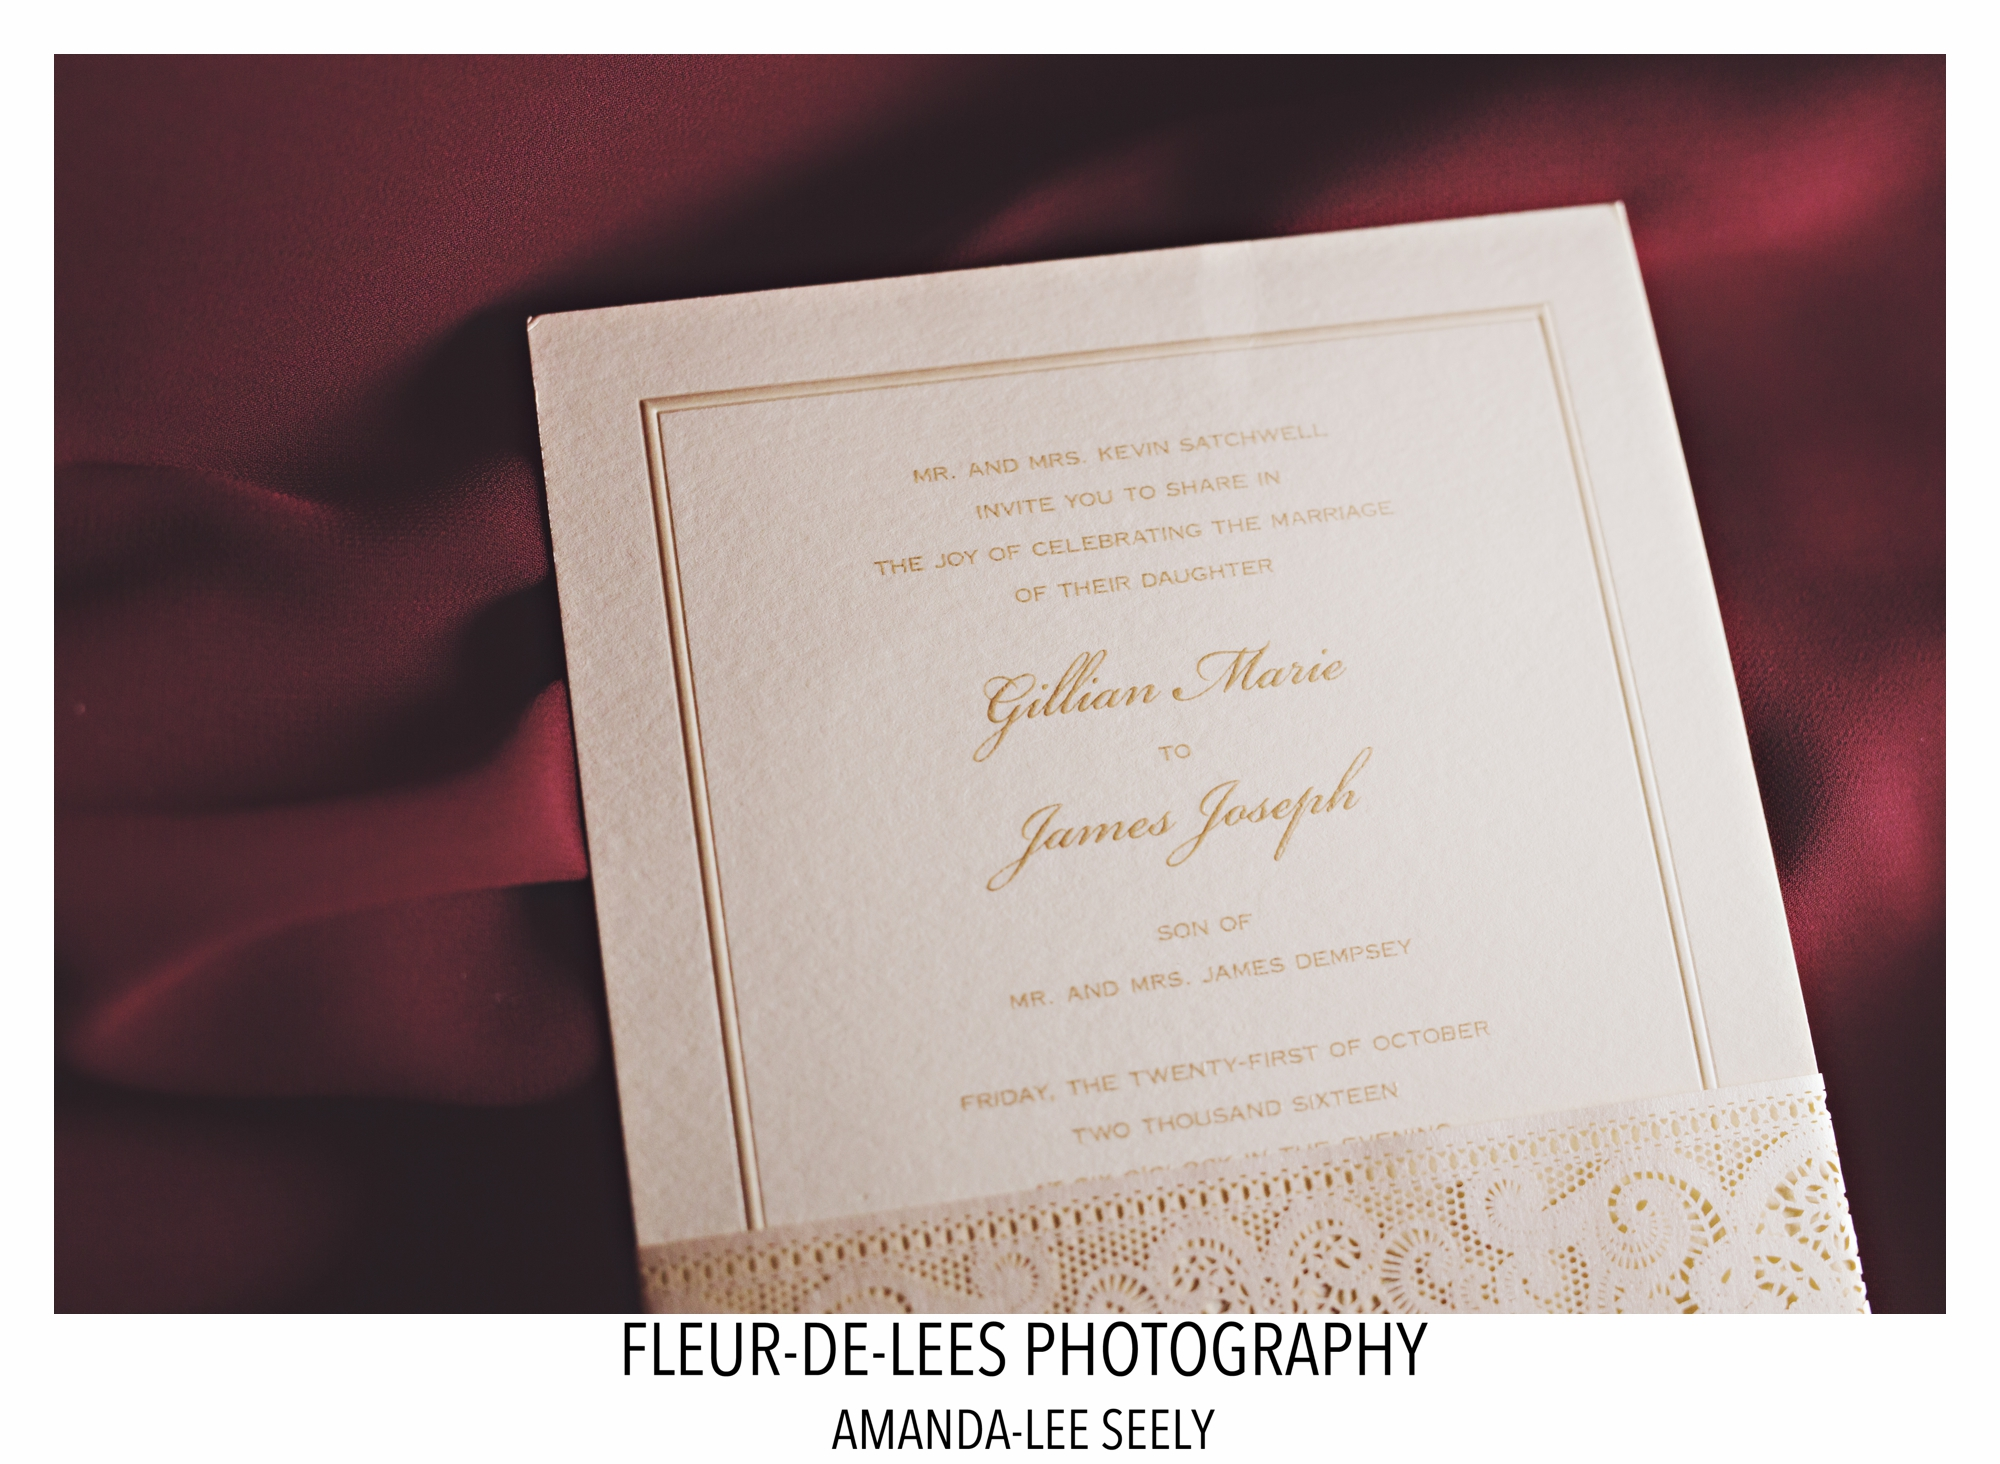 blog-gillian-and-james-wedding-1